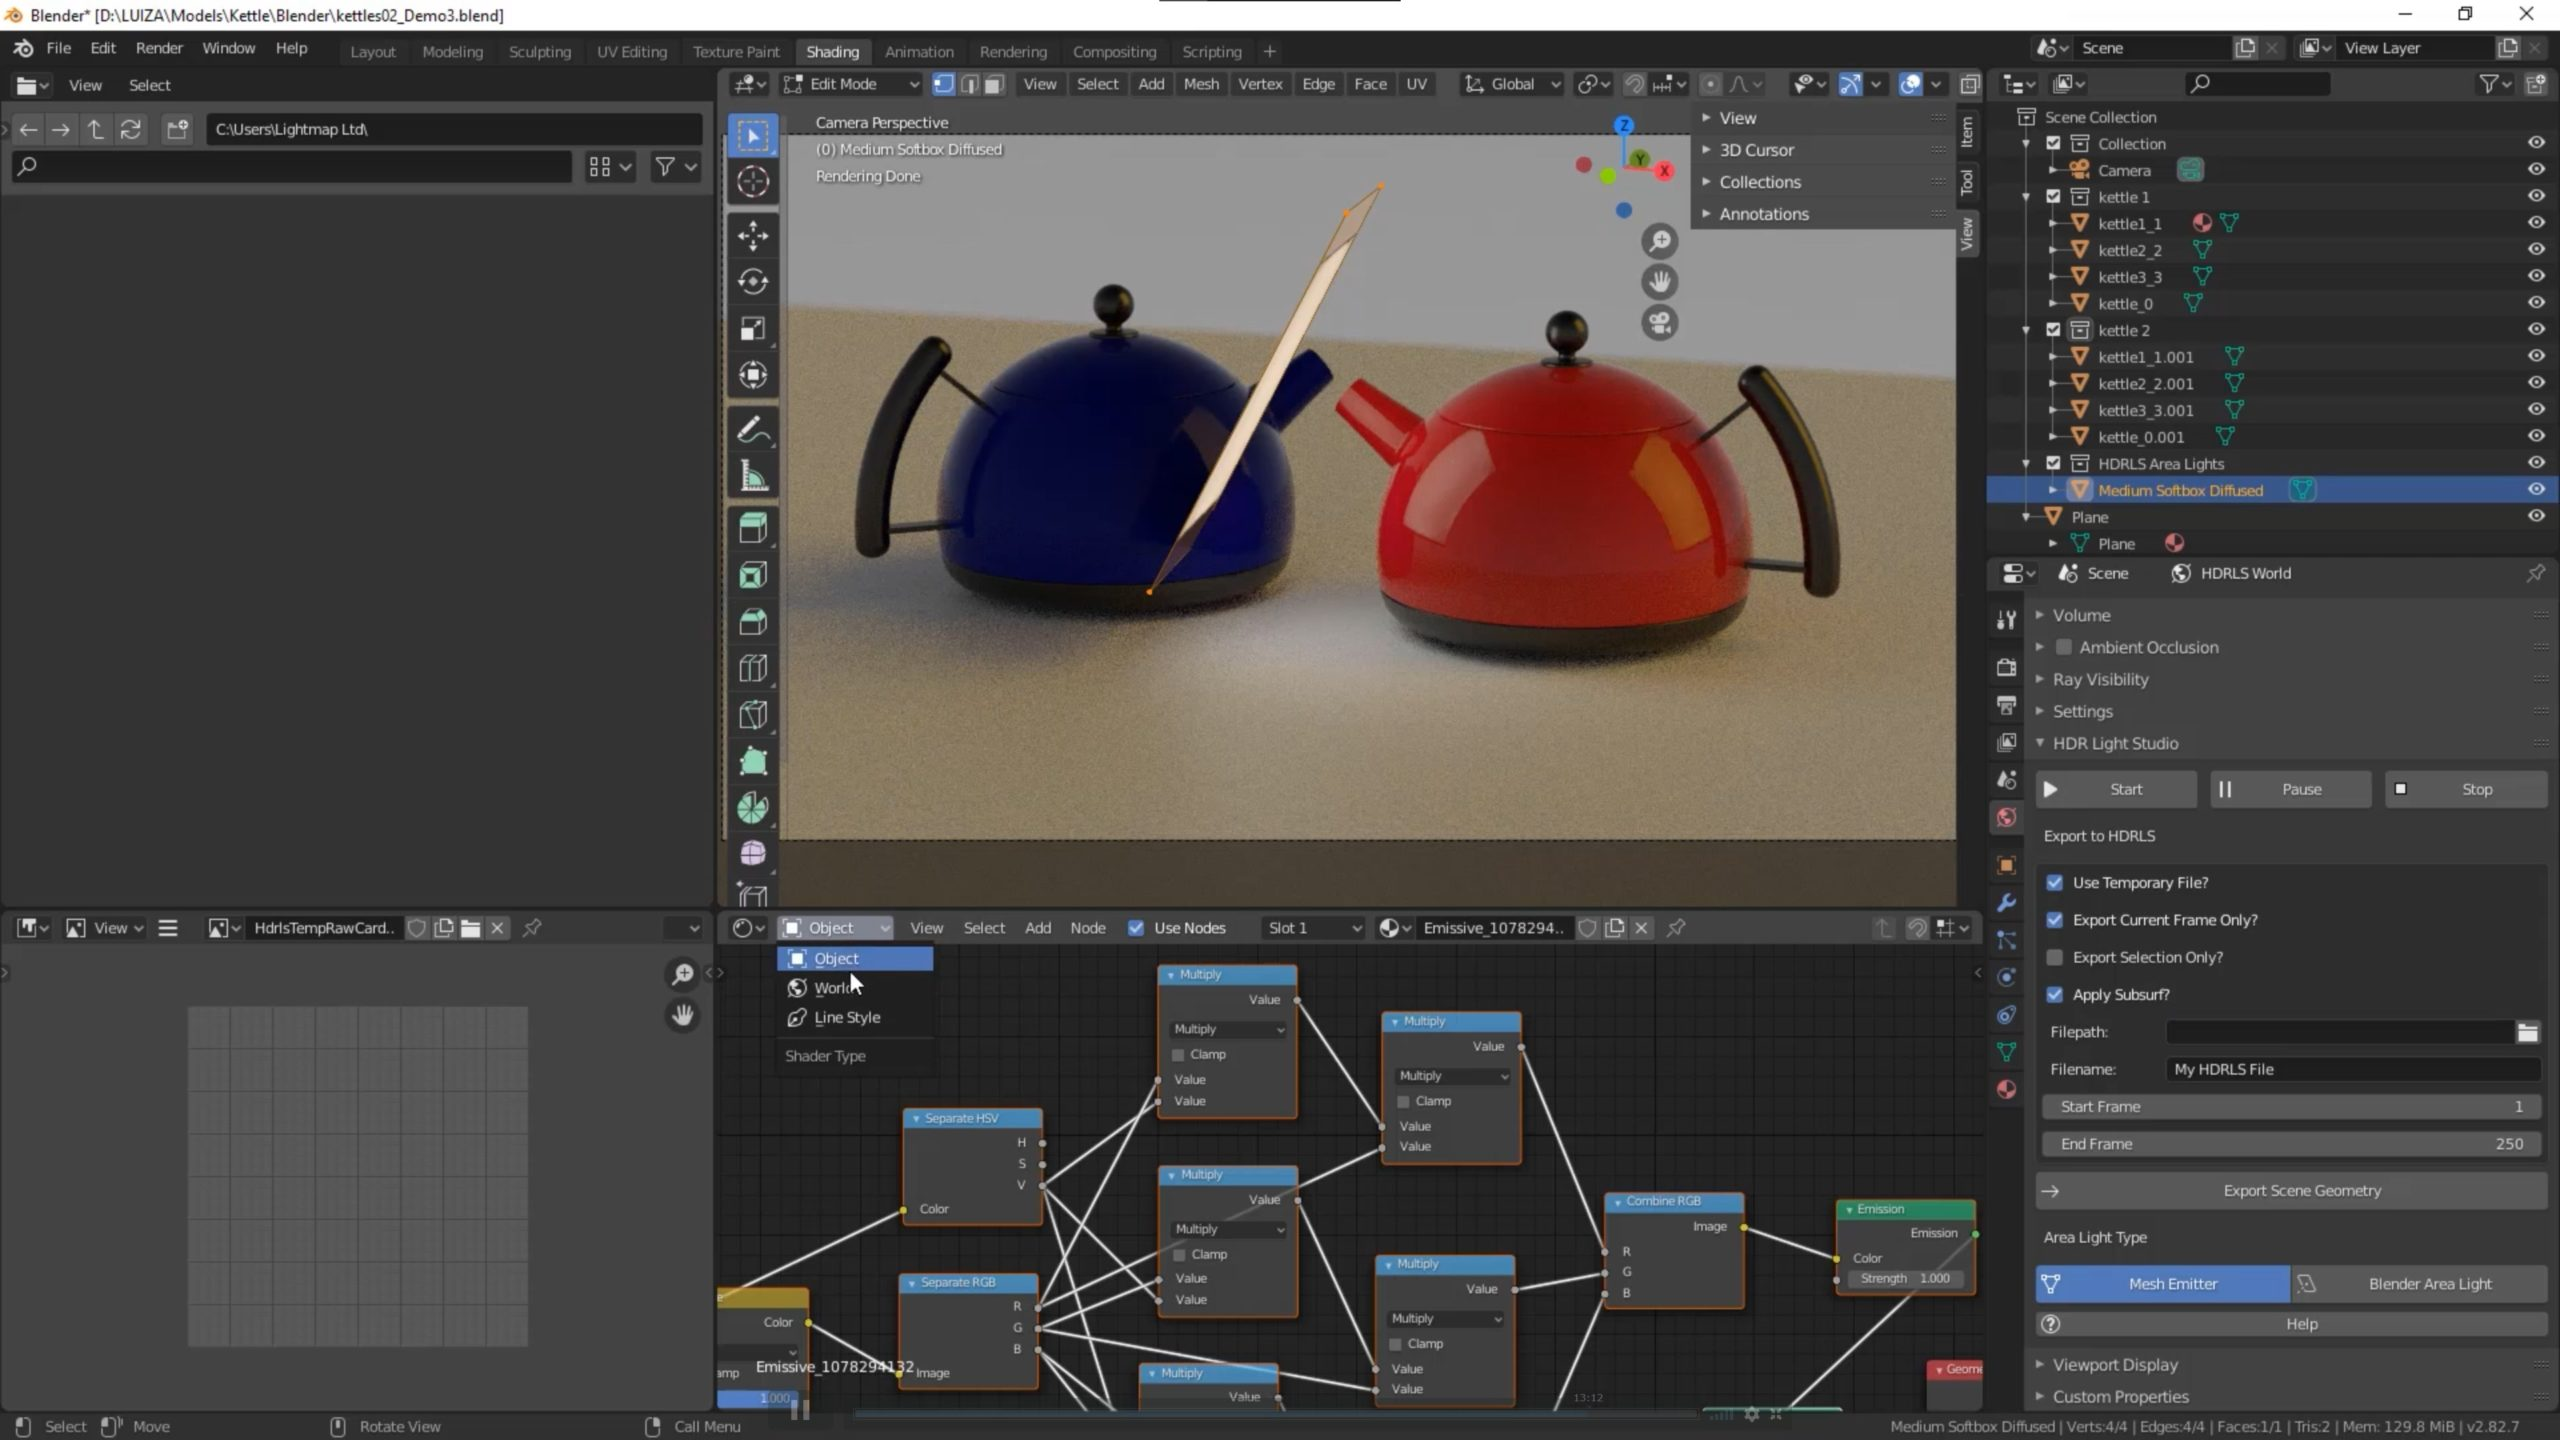 Blender mesh emitter lights and textured Area lights can be created and controlled from within HDR Light Studio